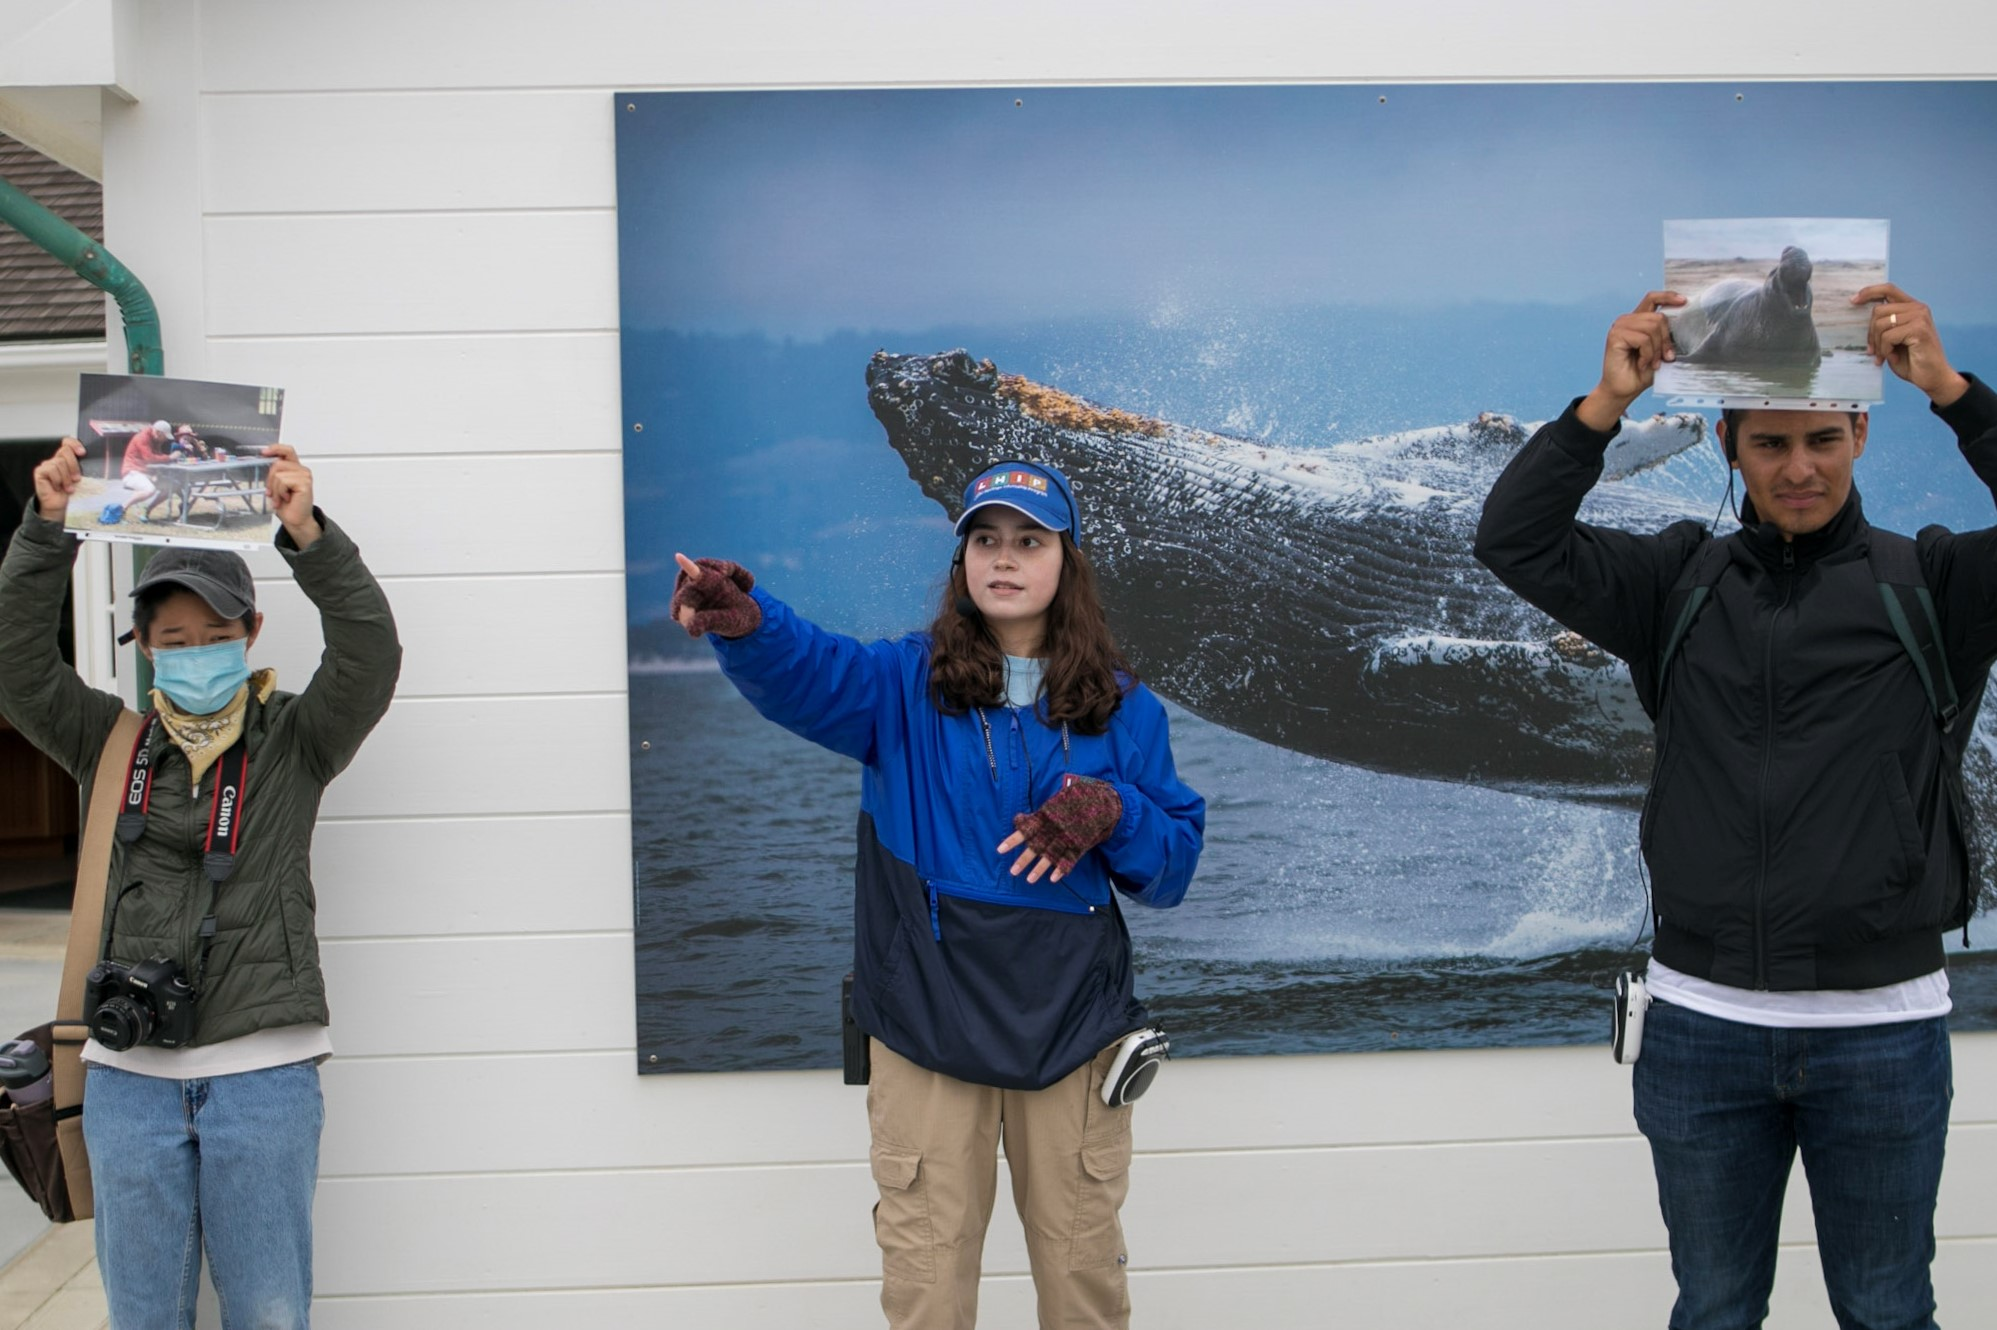 Woman in LHIP uniform is pointing to the distance at the center of the image. Two people are on either side of her holding up printed images. There is an image of a whale on the wall in the background.